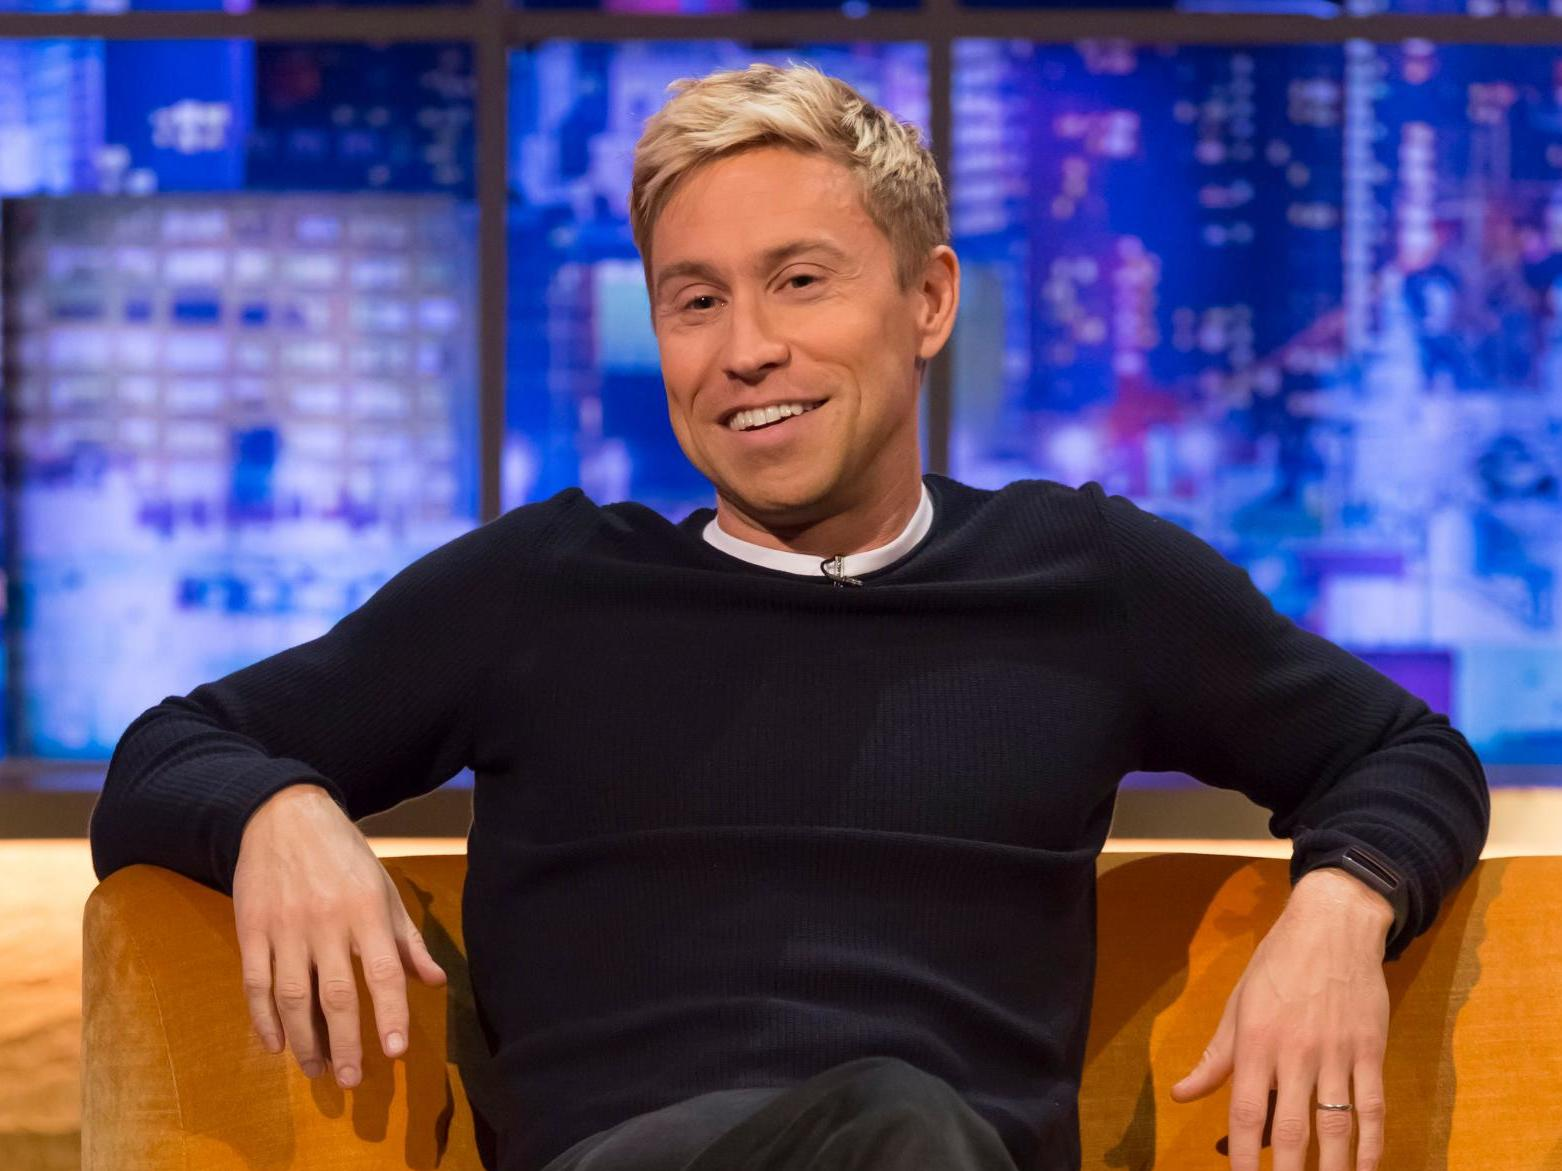 Russell Howard storms out of stand-up comedy gig after five minutes